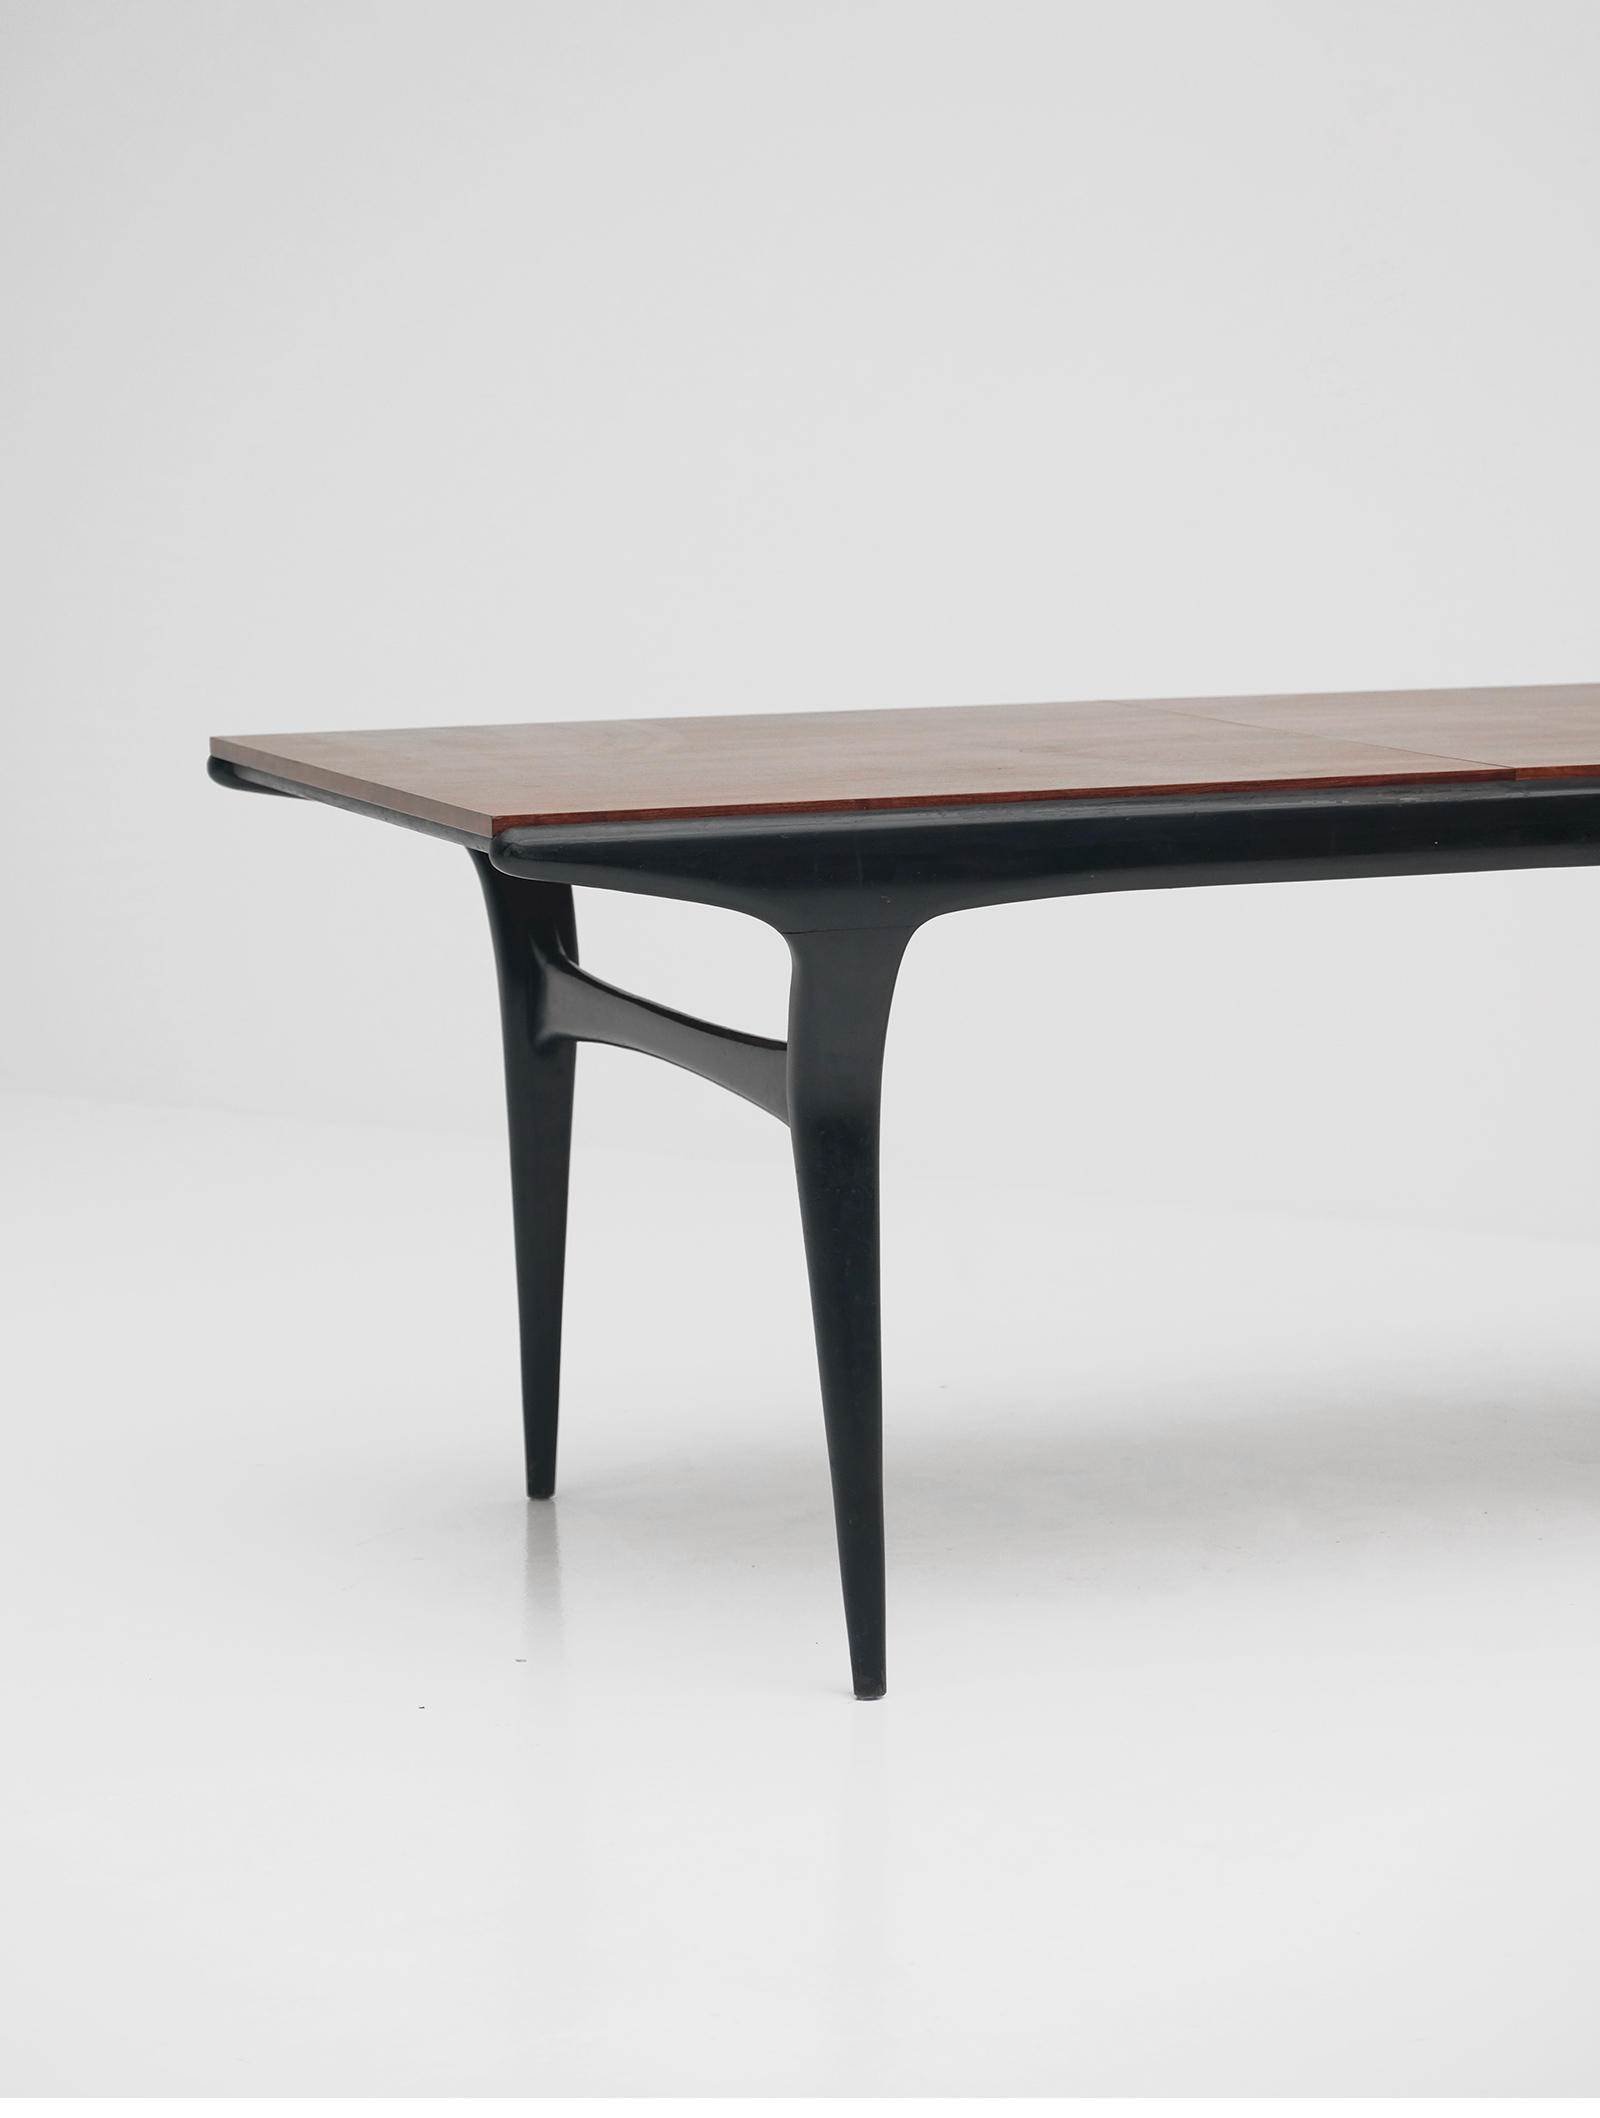 Alfred Hendrickx rare Belform Dining Table 1950simage 7